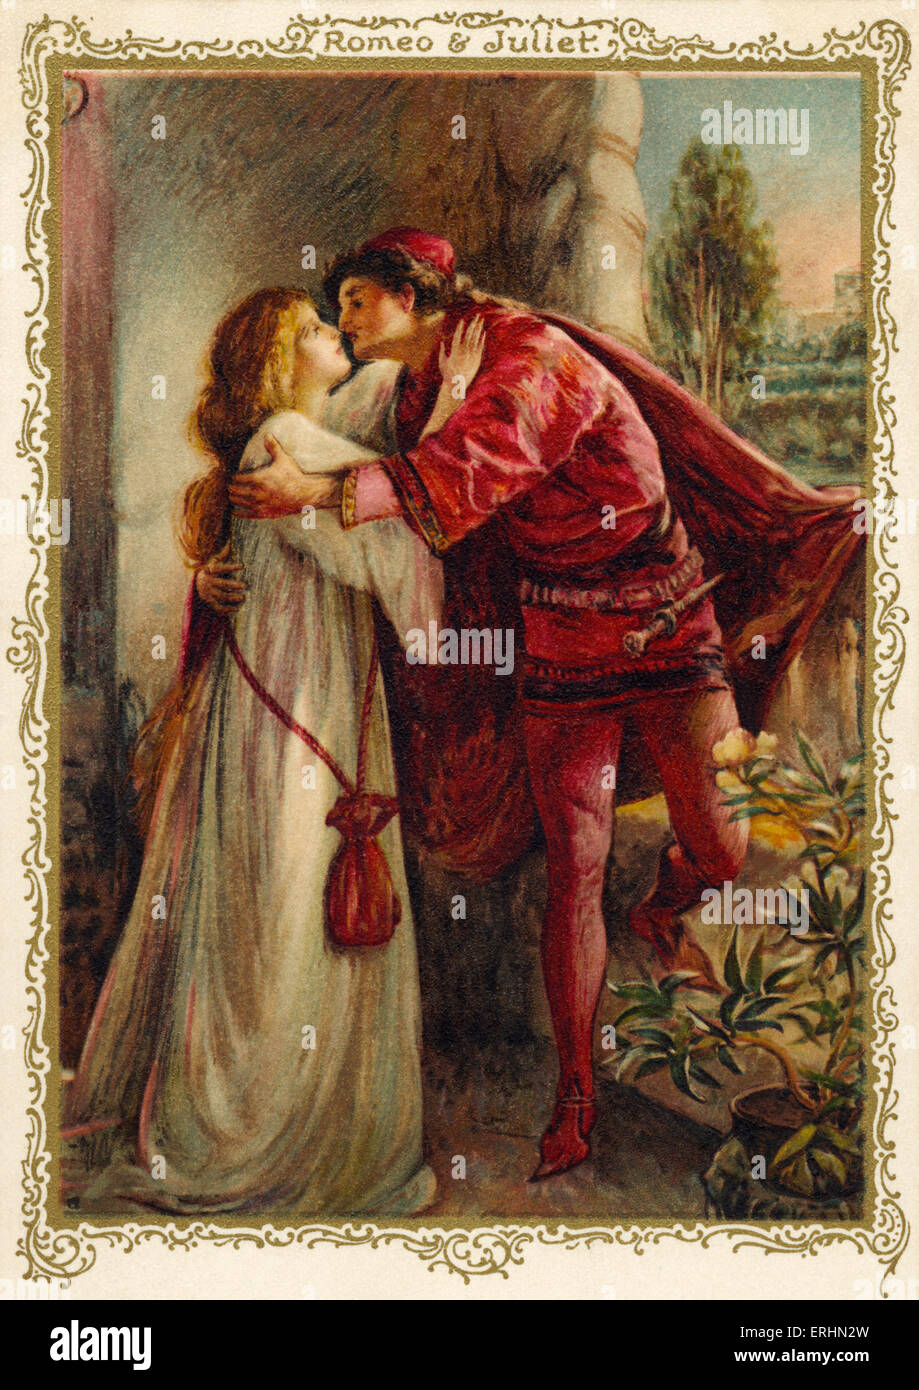 an analysis of the love story of romeo and juliet by william shakespeare He 'shakespeare in love are unleashed as his great love story, romeo and juliet is telling the story that so little is known about william shakespeare.